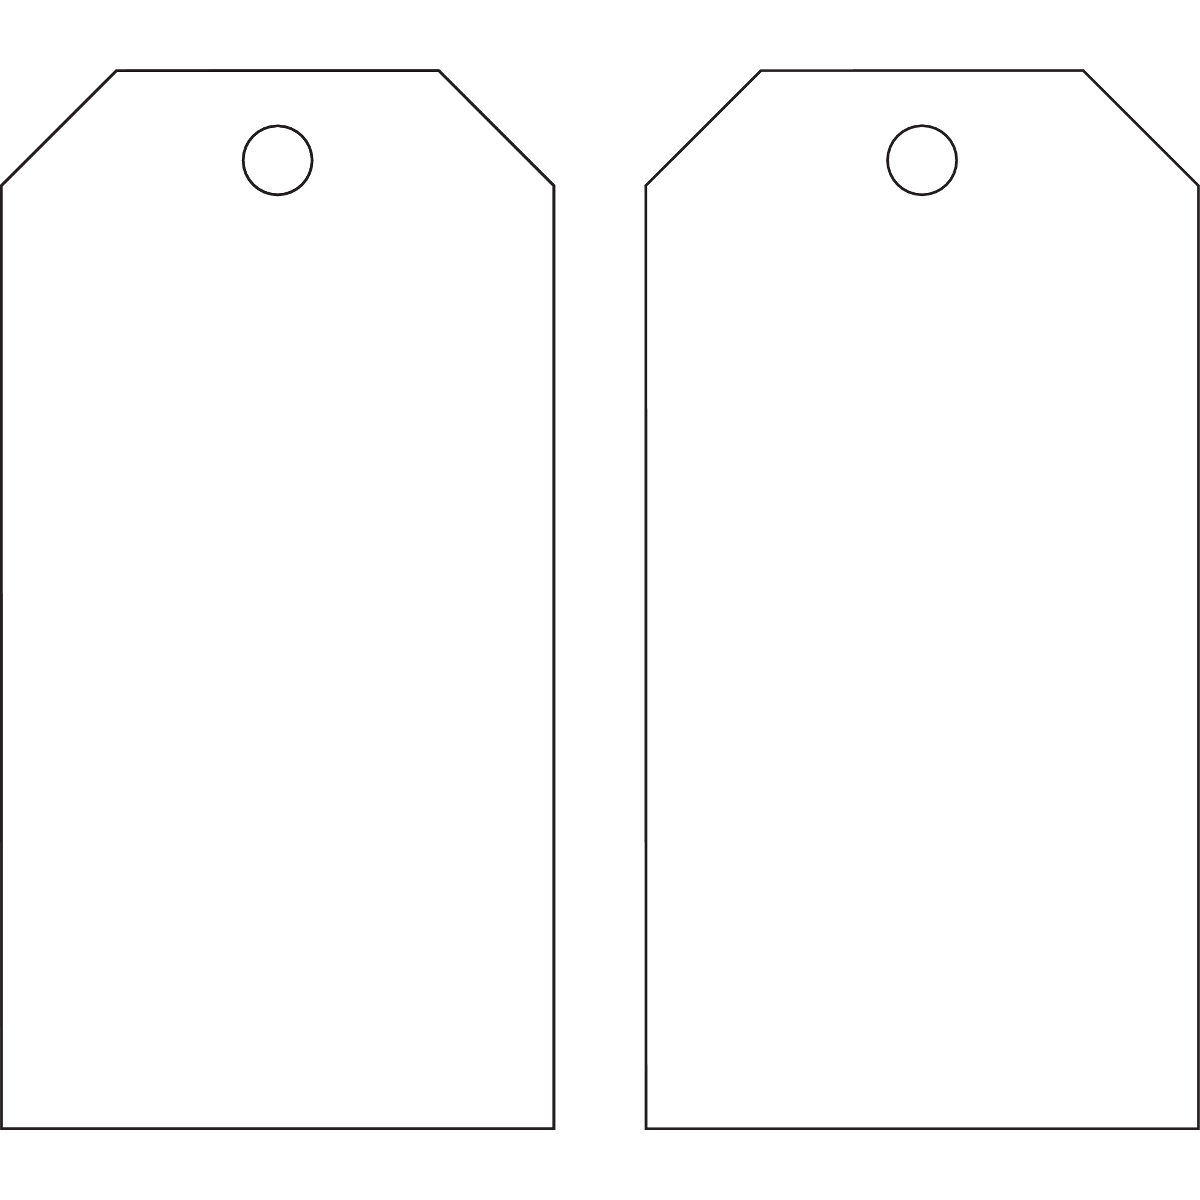 Brady® 65372 Write-On Accident Prevention Tag, 5-3/4 in H x 3 in W, B-851 Polyester, White, Rectangle Shape